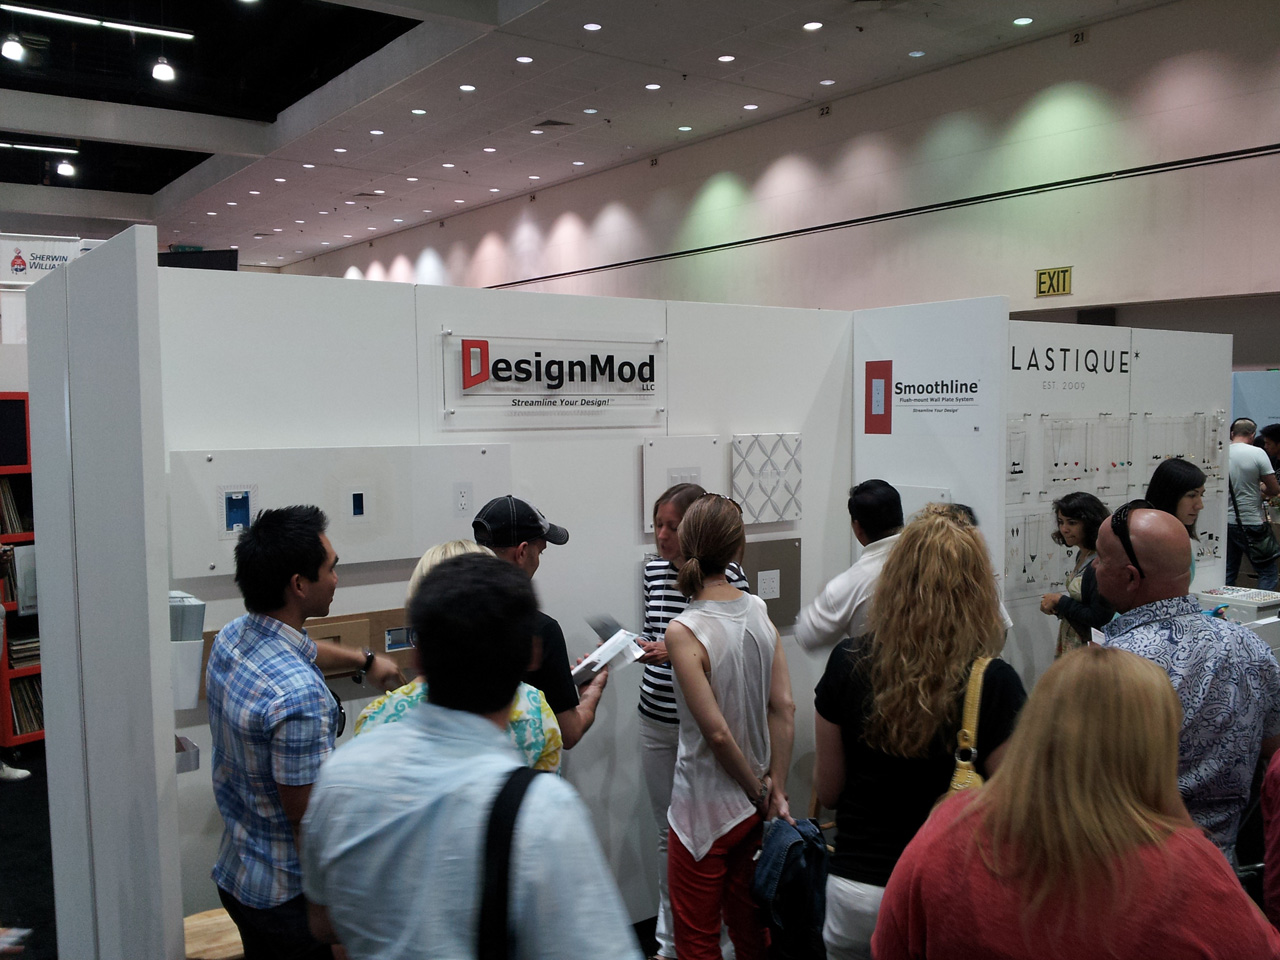 DesignMod booth at Dwell on Design 2013